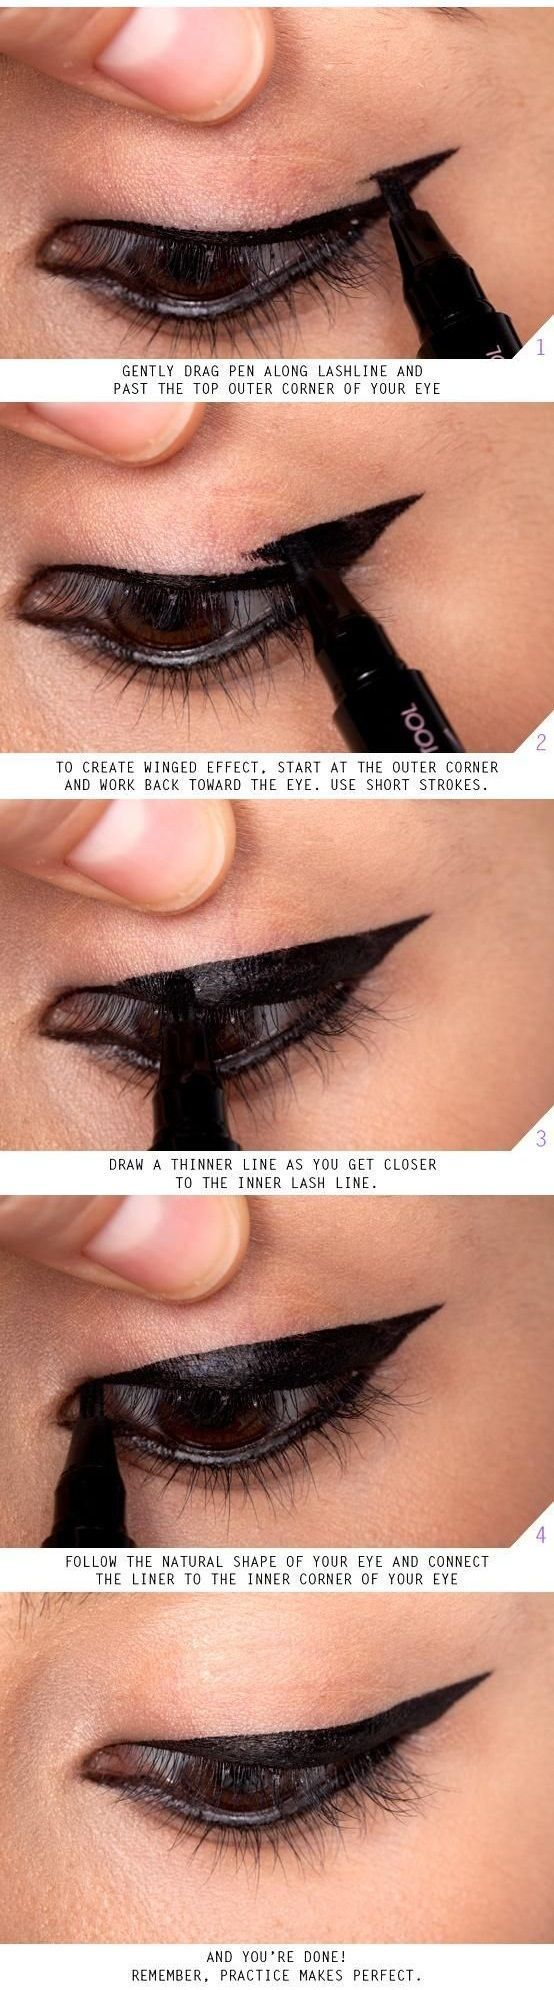 Amazing tutorials on eyeliner tricks for big eyes or small eyes. | http://makeuptutorials.com/makeup-tutorials-17-great-eyeliner-hacks/